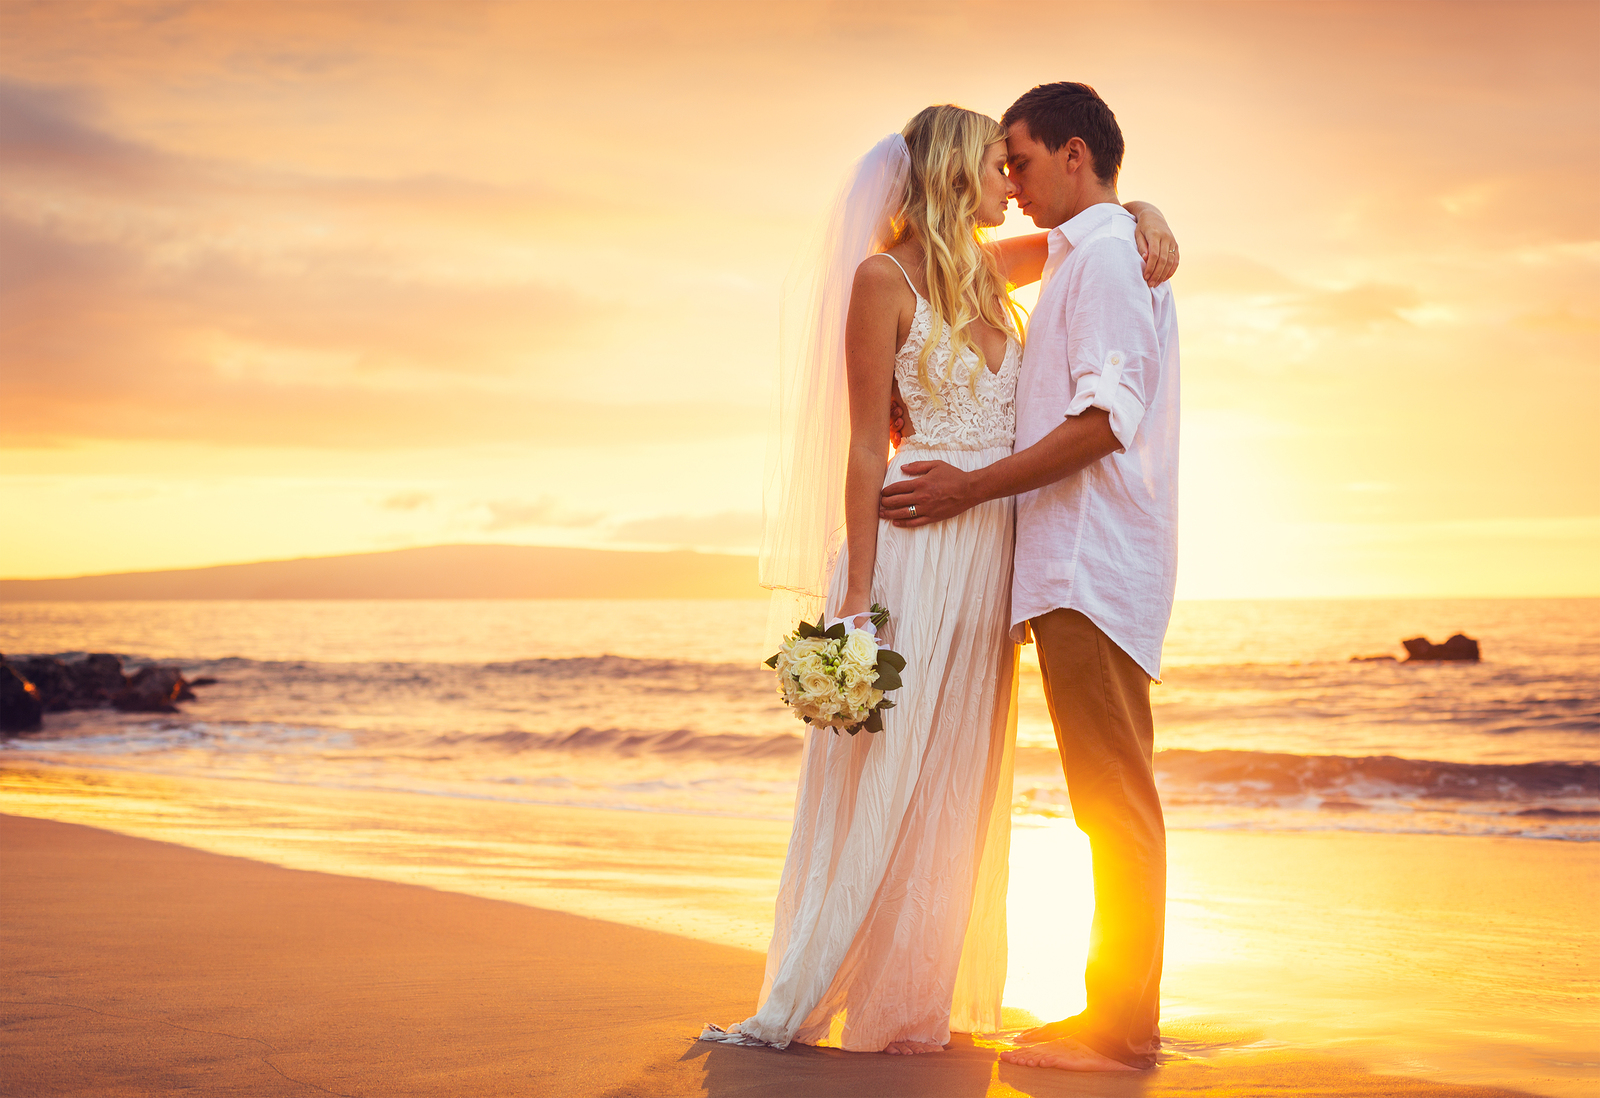 A beach wedding anywhere is an incredibly romantic experience, but when that beach wedding is at Grand Solmar Timeshare in Cabo San Lucas, the experience is unlike any other.